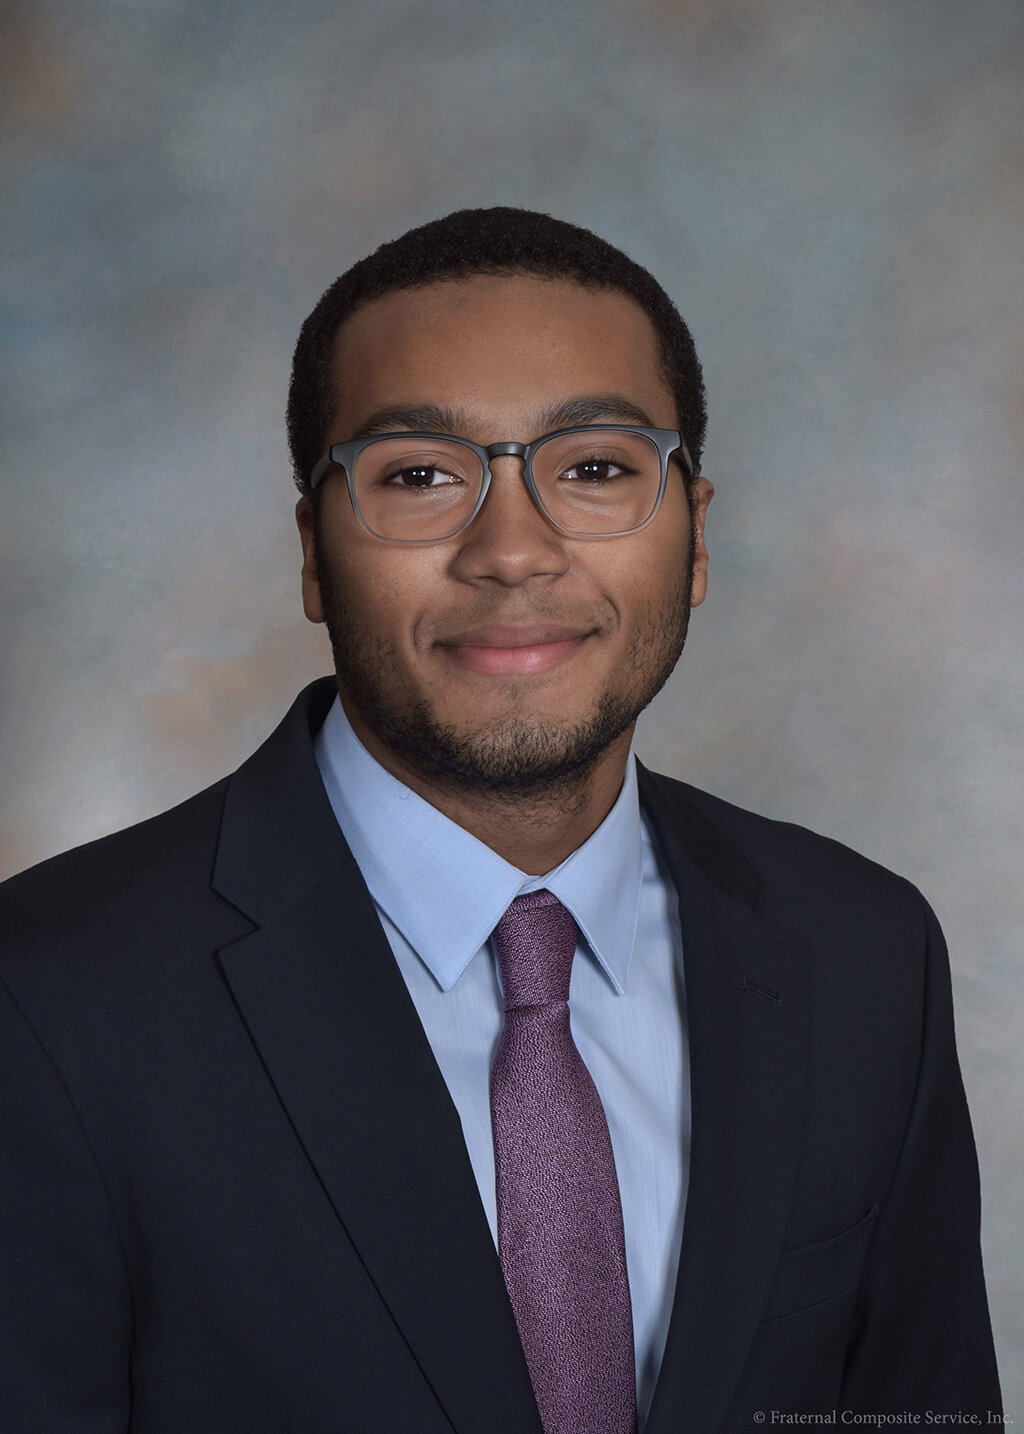 Julian Ford  | Class of 2021   Hometown:  New York, NY   Majoring in  Wharton: Management & Real Estate   Bain & Company : BEL Intern   Auldbrass Partners:  Summer Analyst   Groups & Societies:  Black Wharton, SPEC   Interests:  Tennis, dogs, coffee, hip hop beats, cooking, Tory Lanez